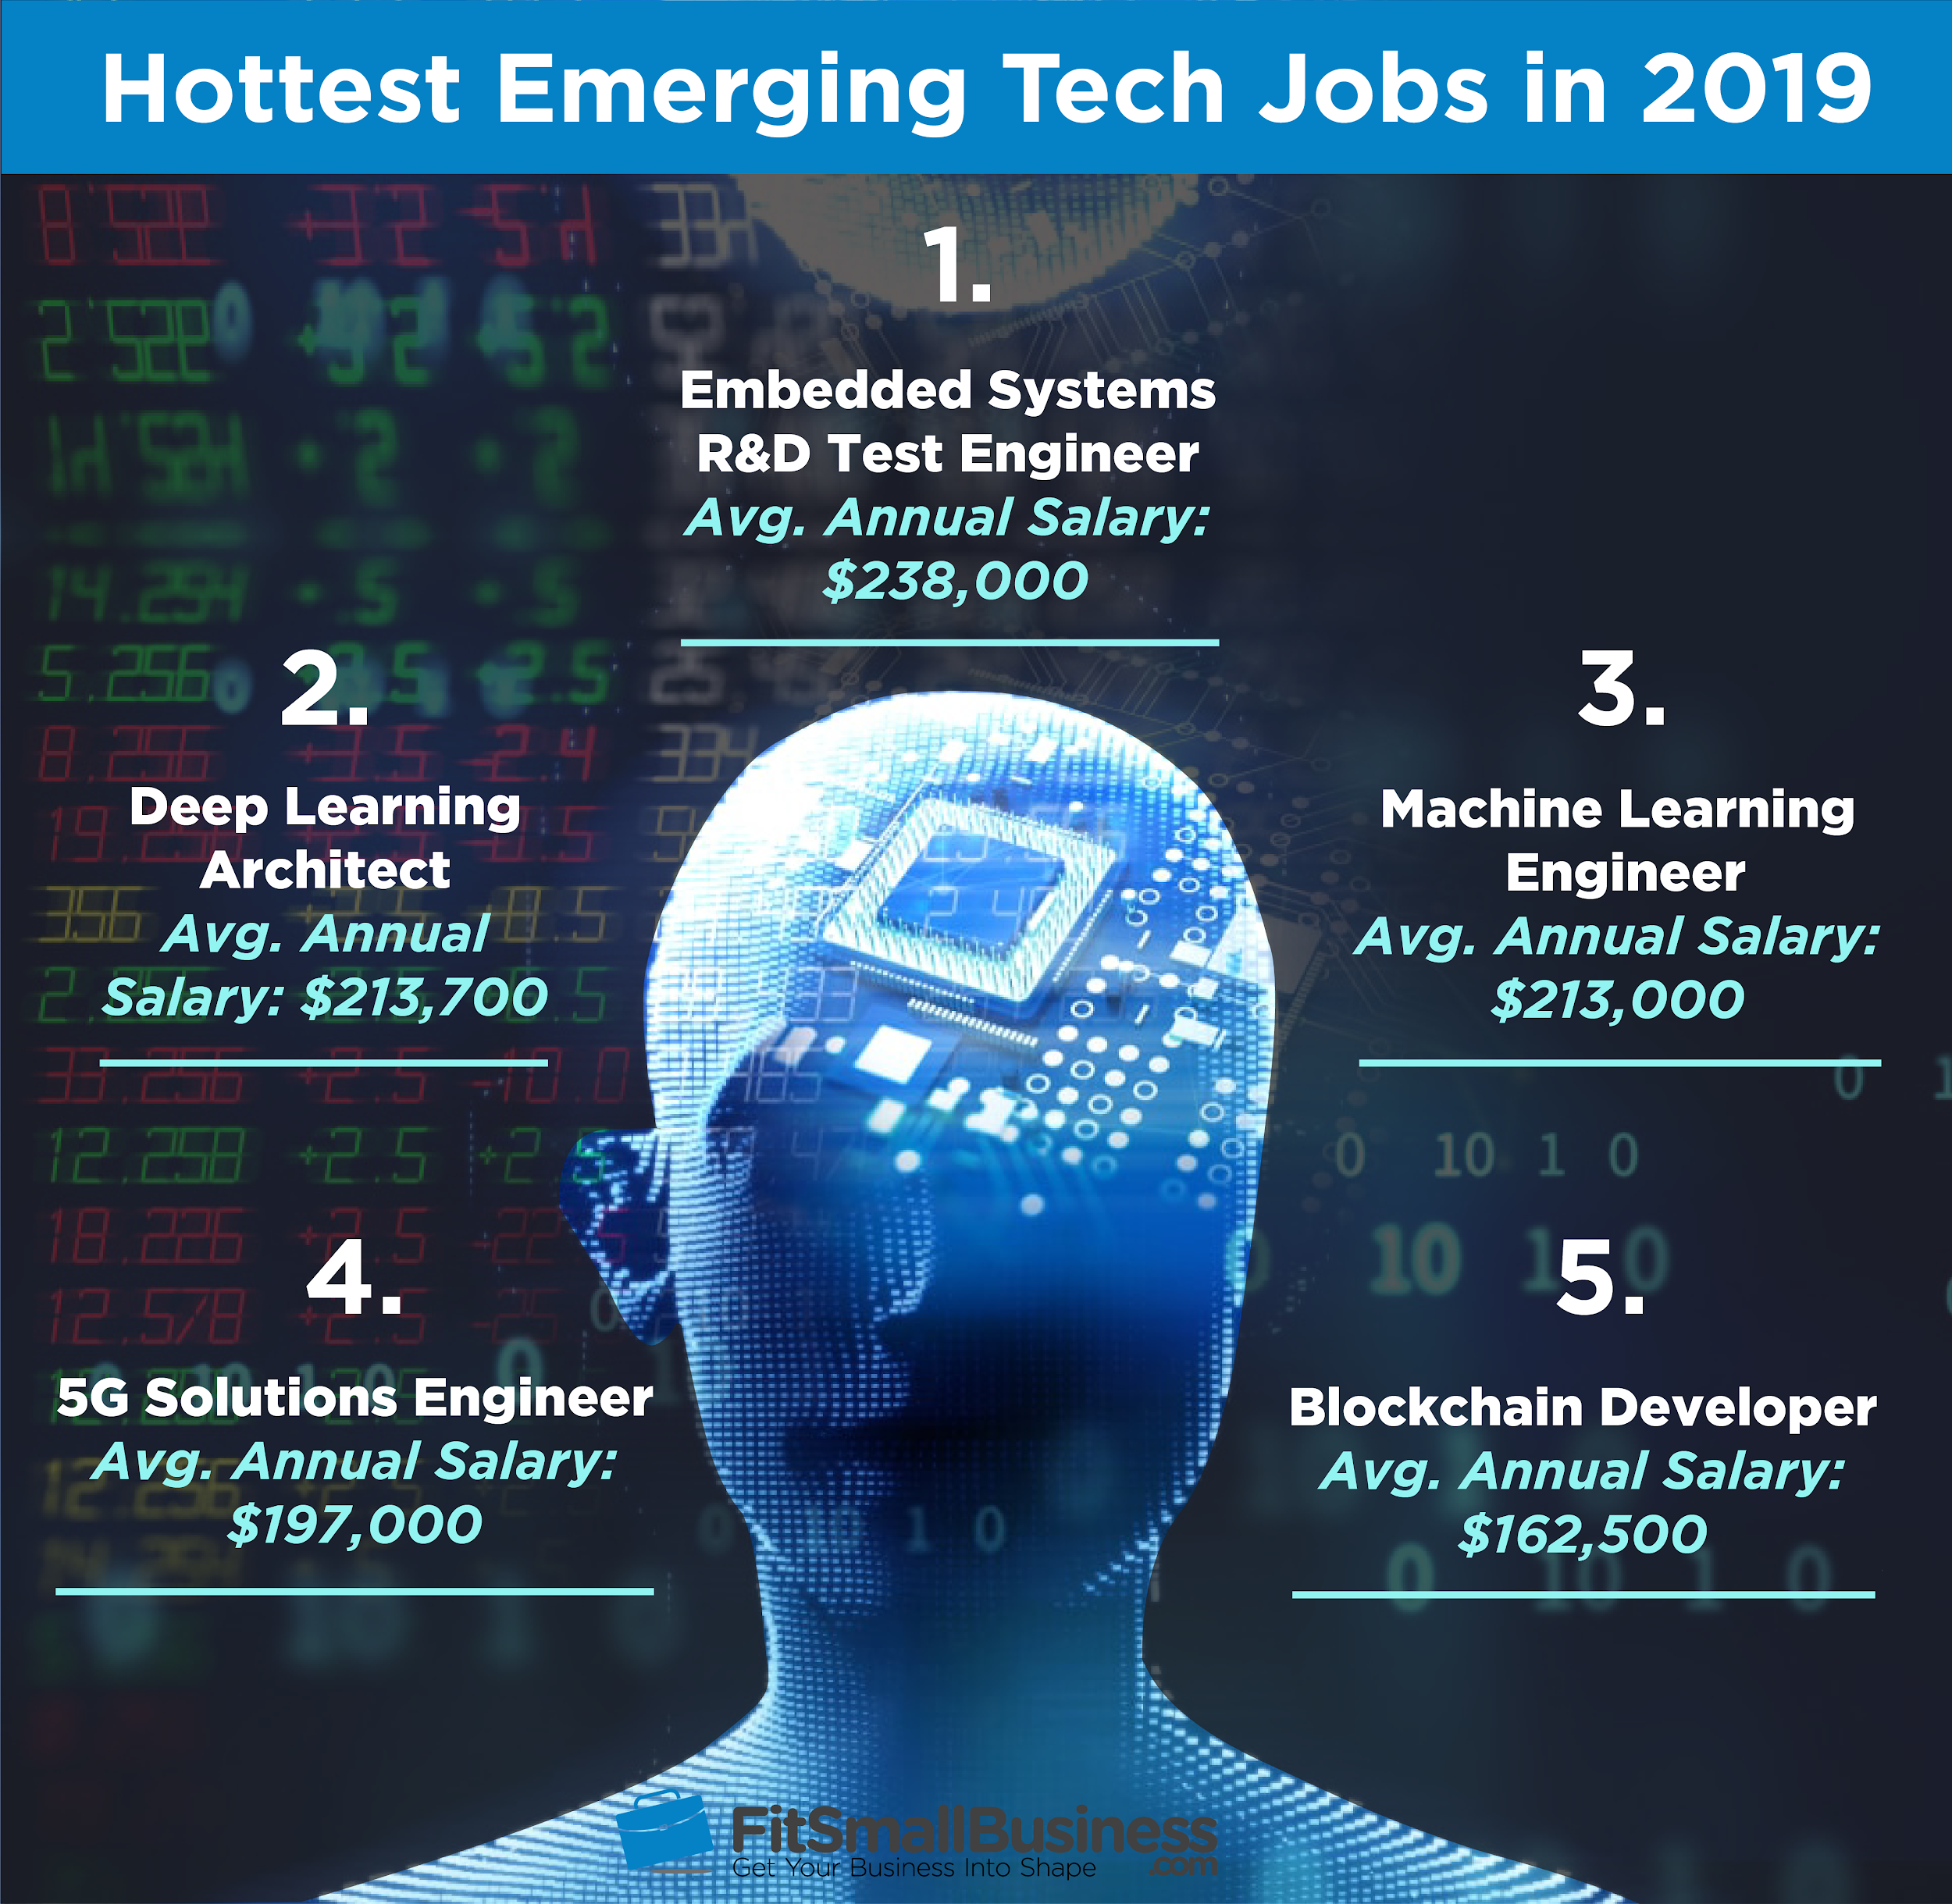 15 Hottest Emerging Tech Jobs in 2019